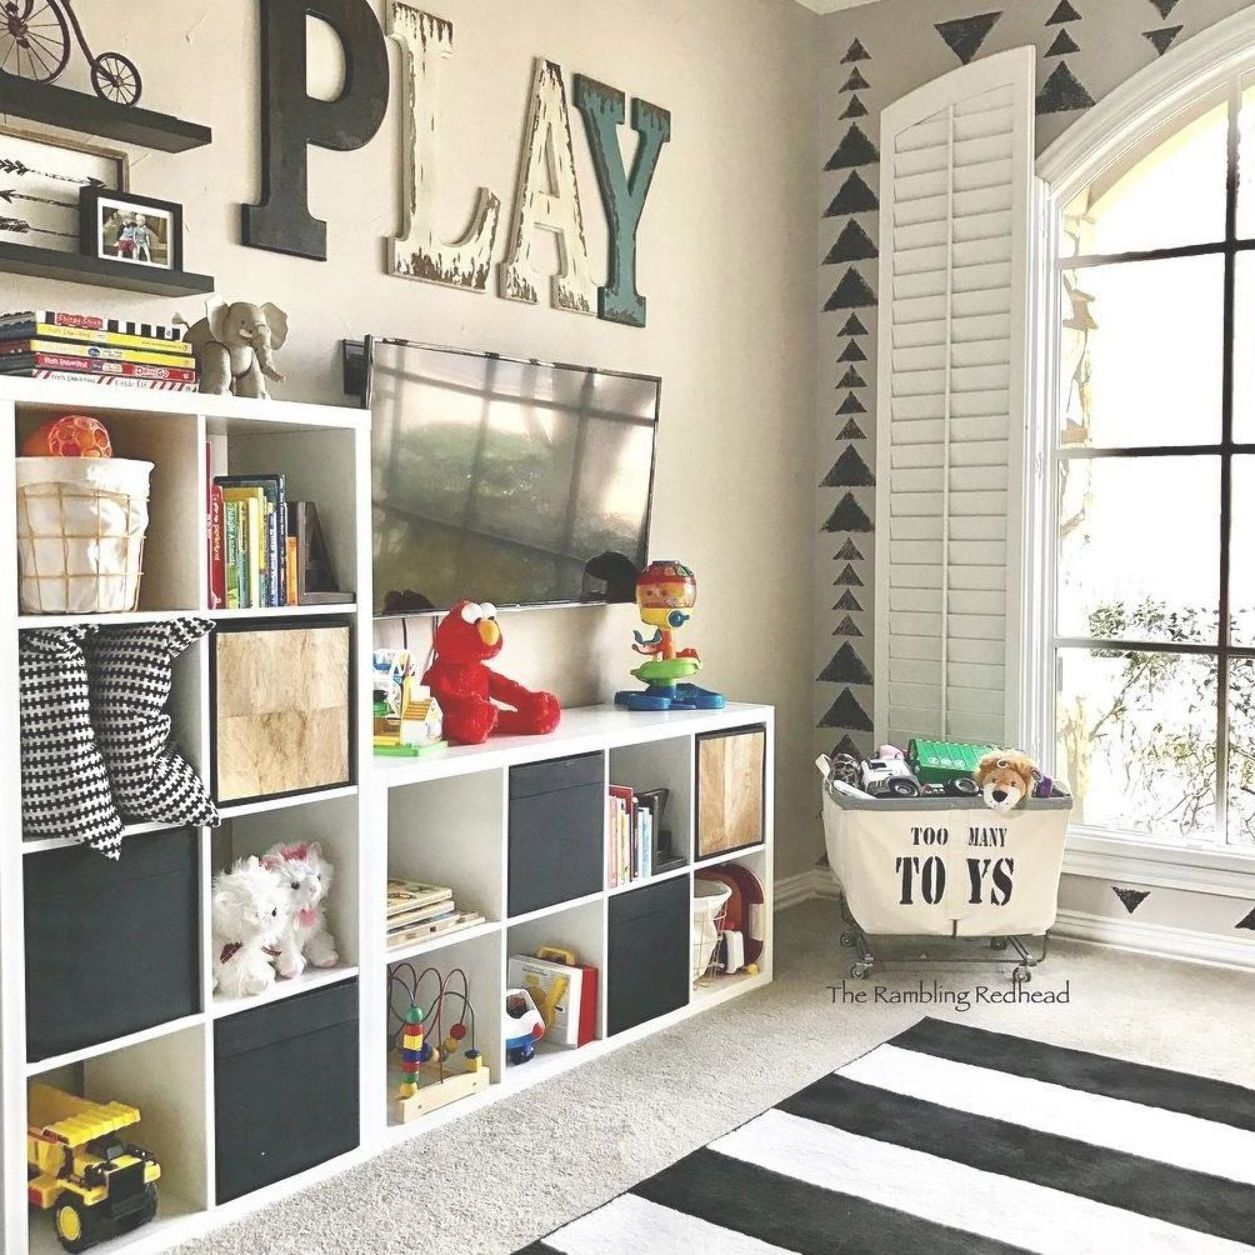 Playroom Ideas - Obtain Inspired To Remodel Your Kid's